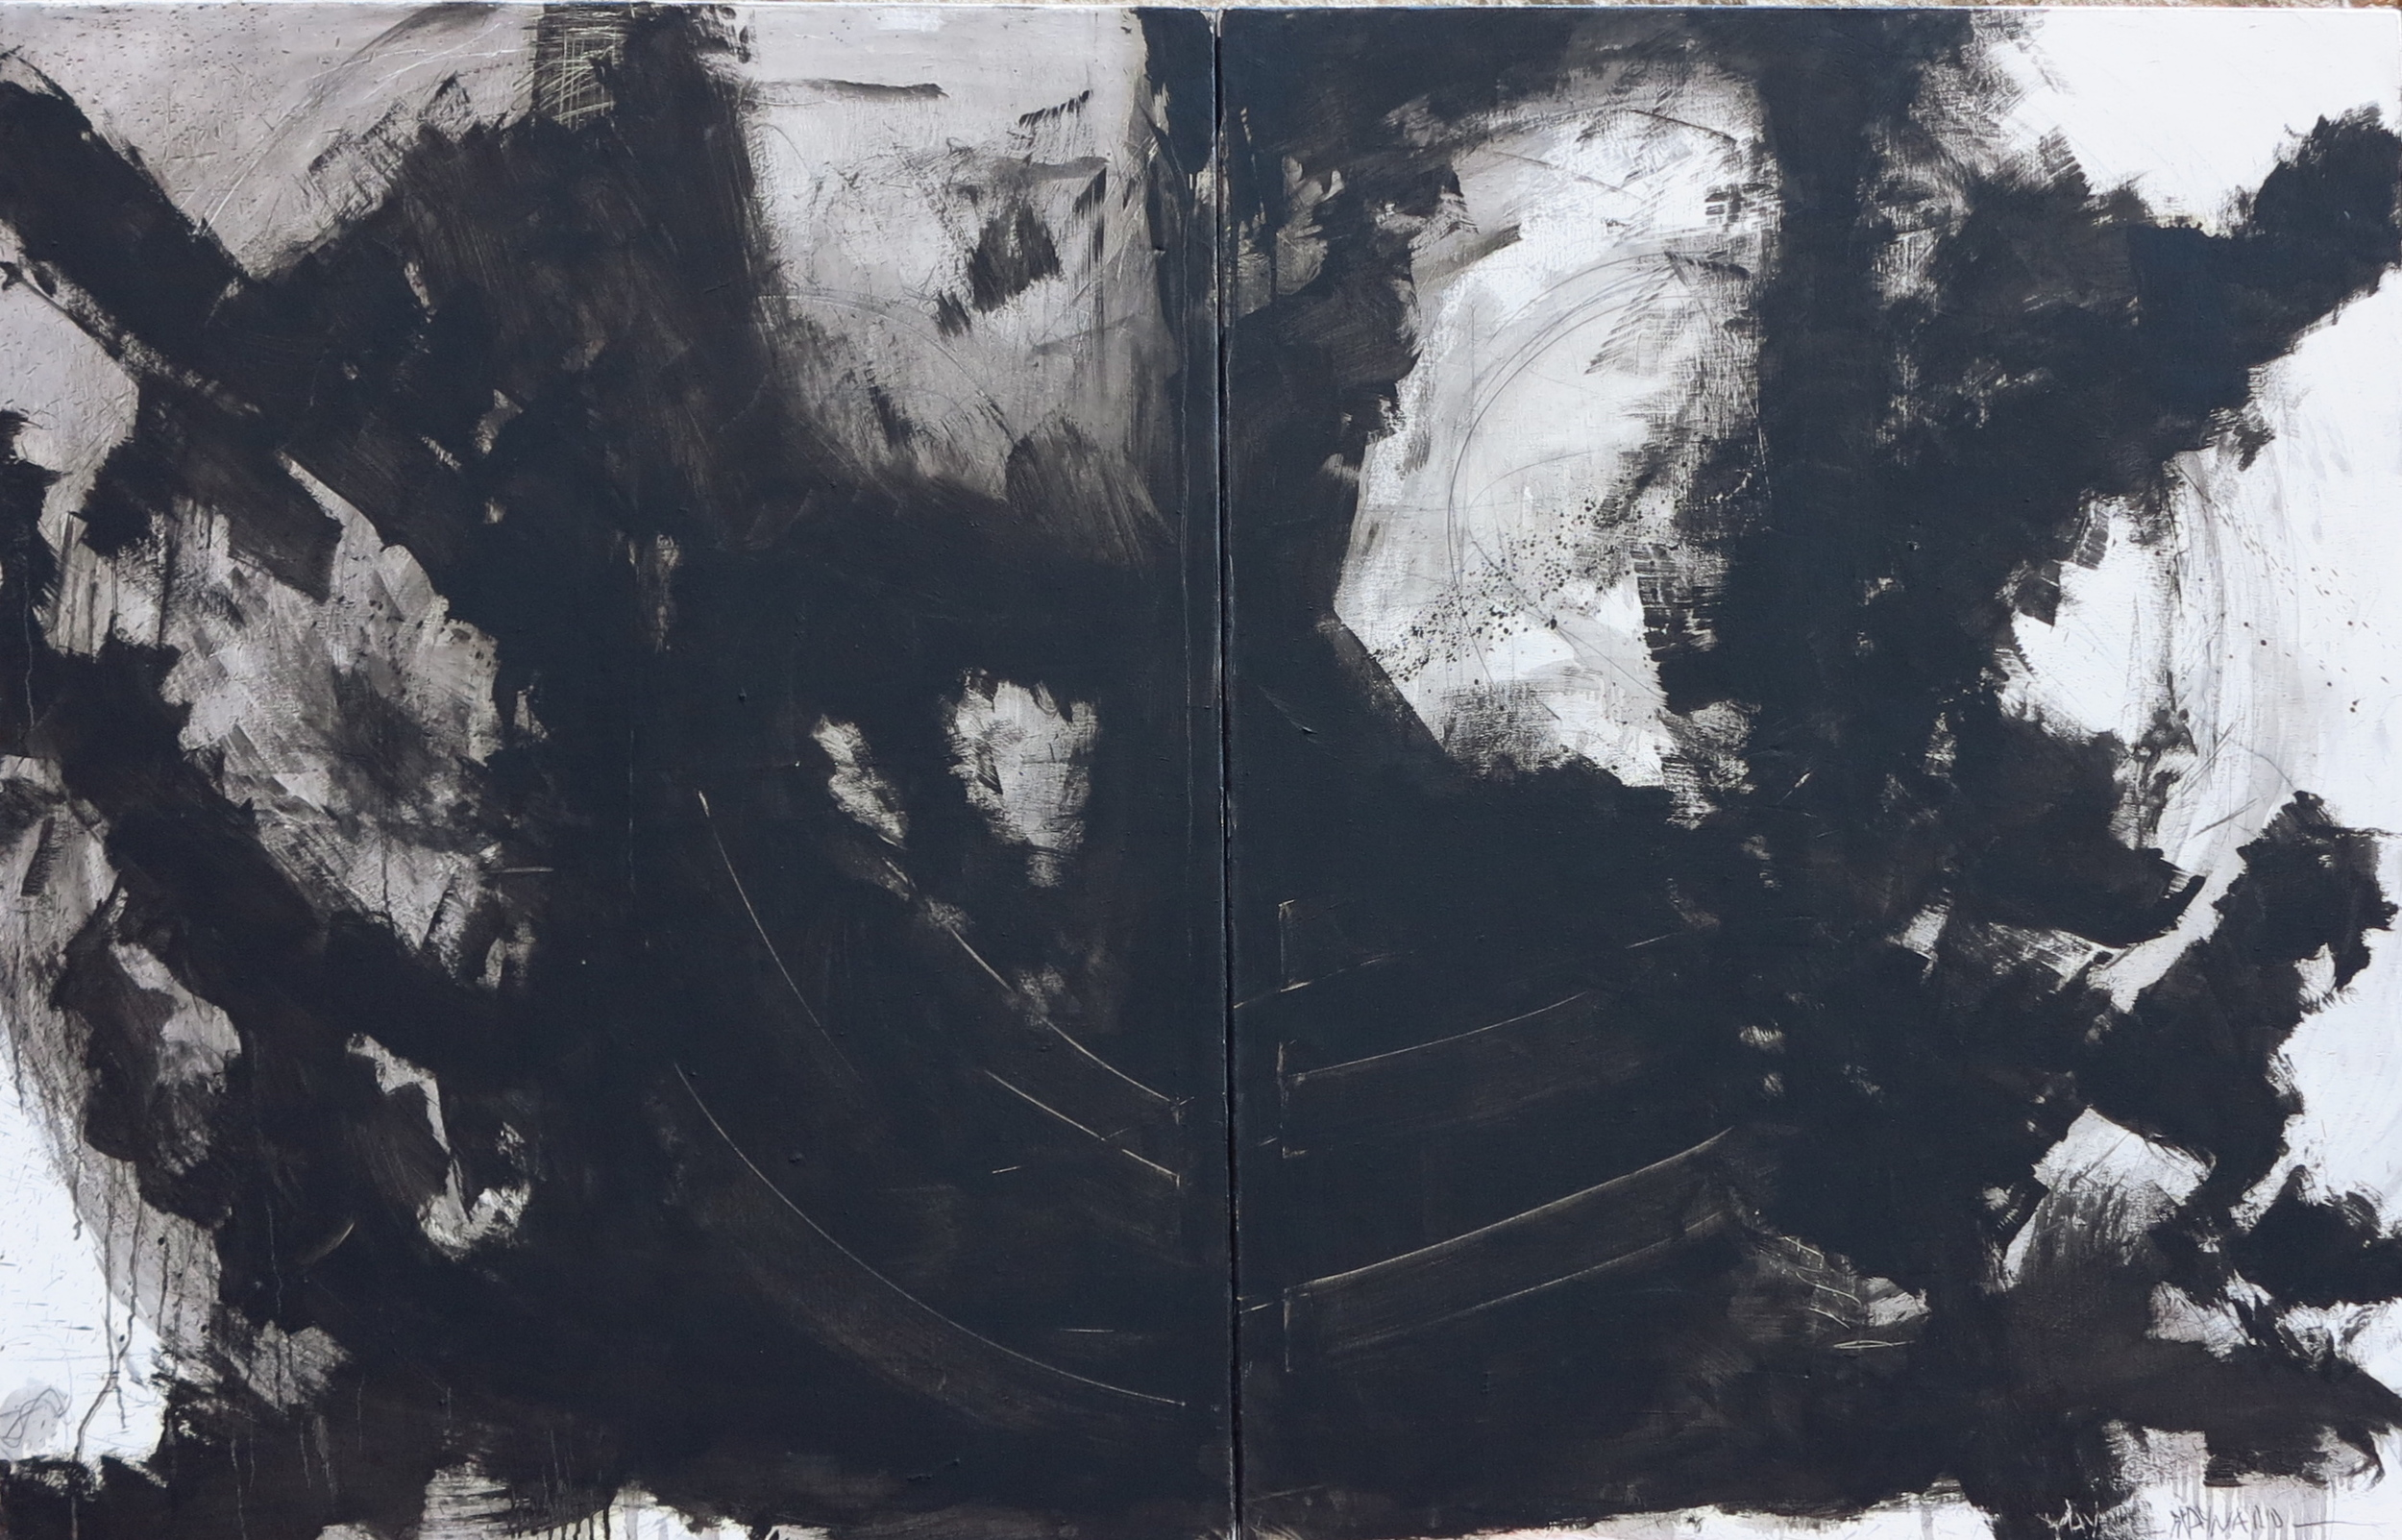 Diptych oil on canvas - size 200 x 130 cm / 78 x 51 inches